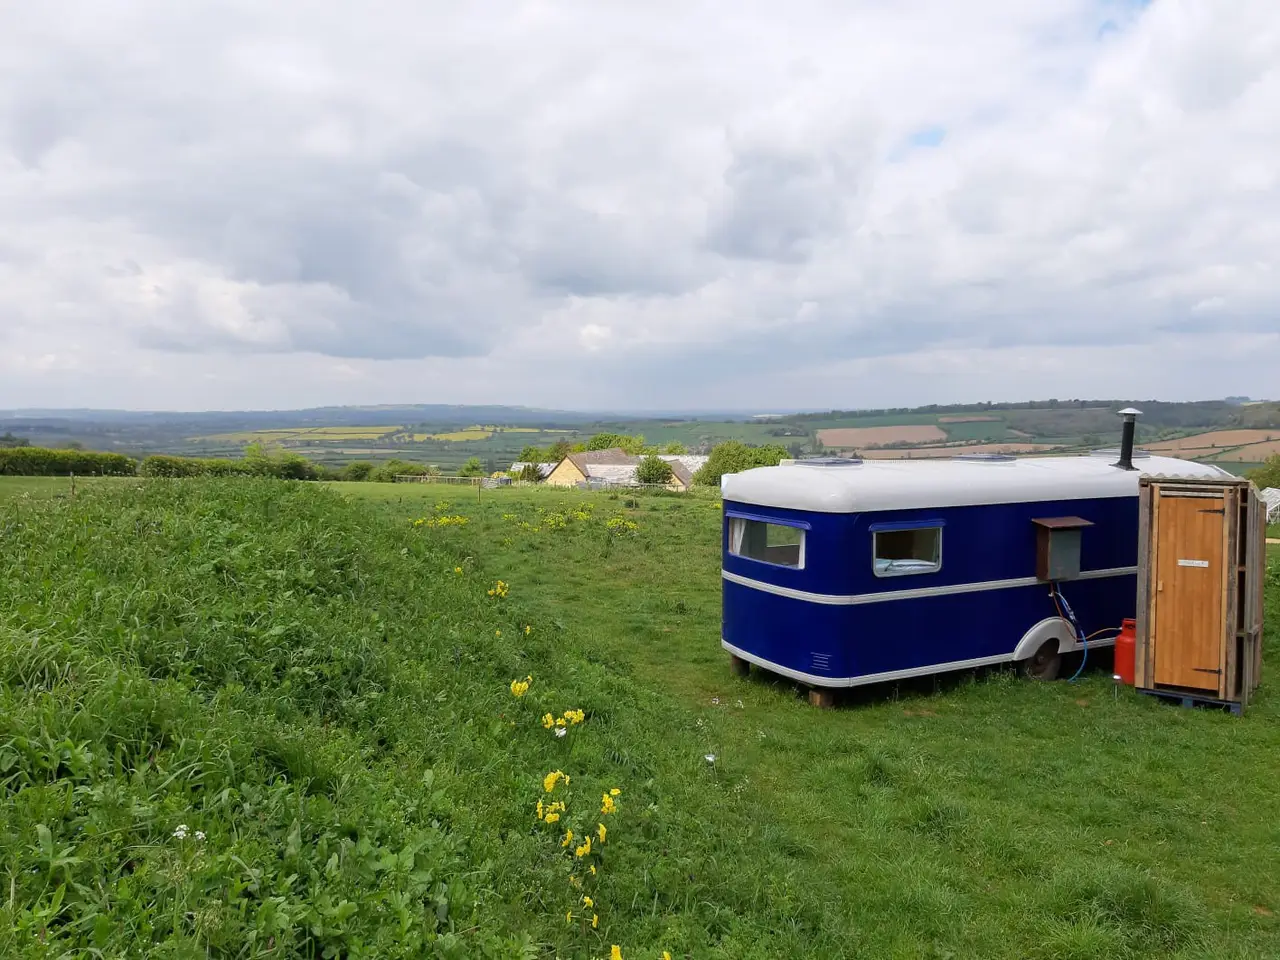 Glamping in the Cotswolds, United Kingdom